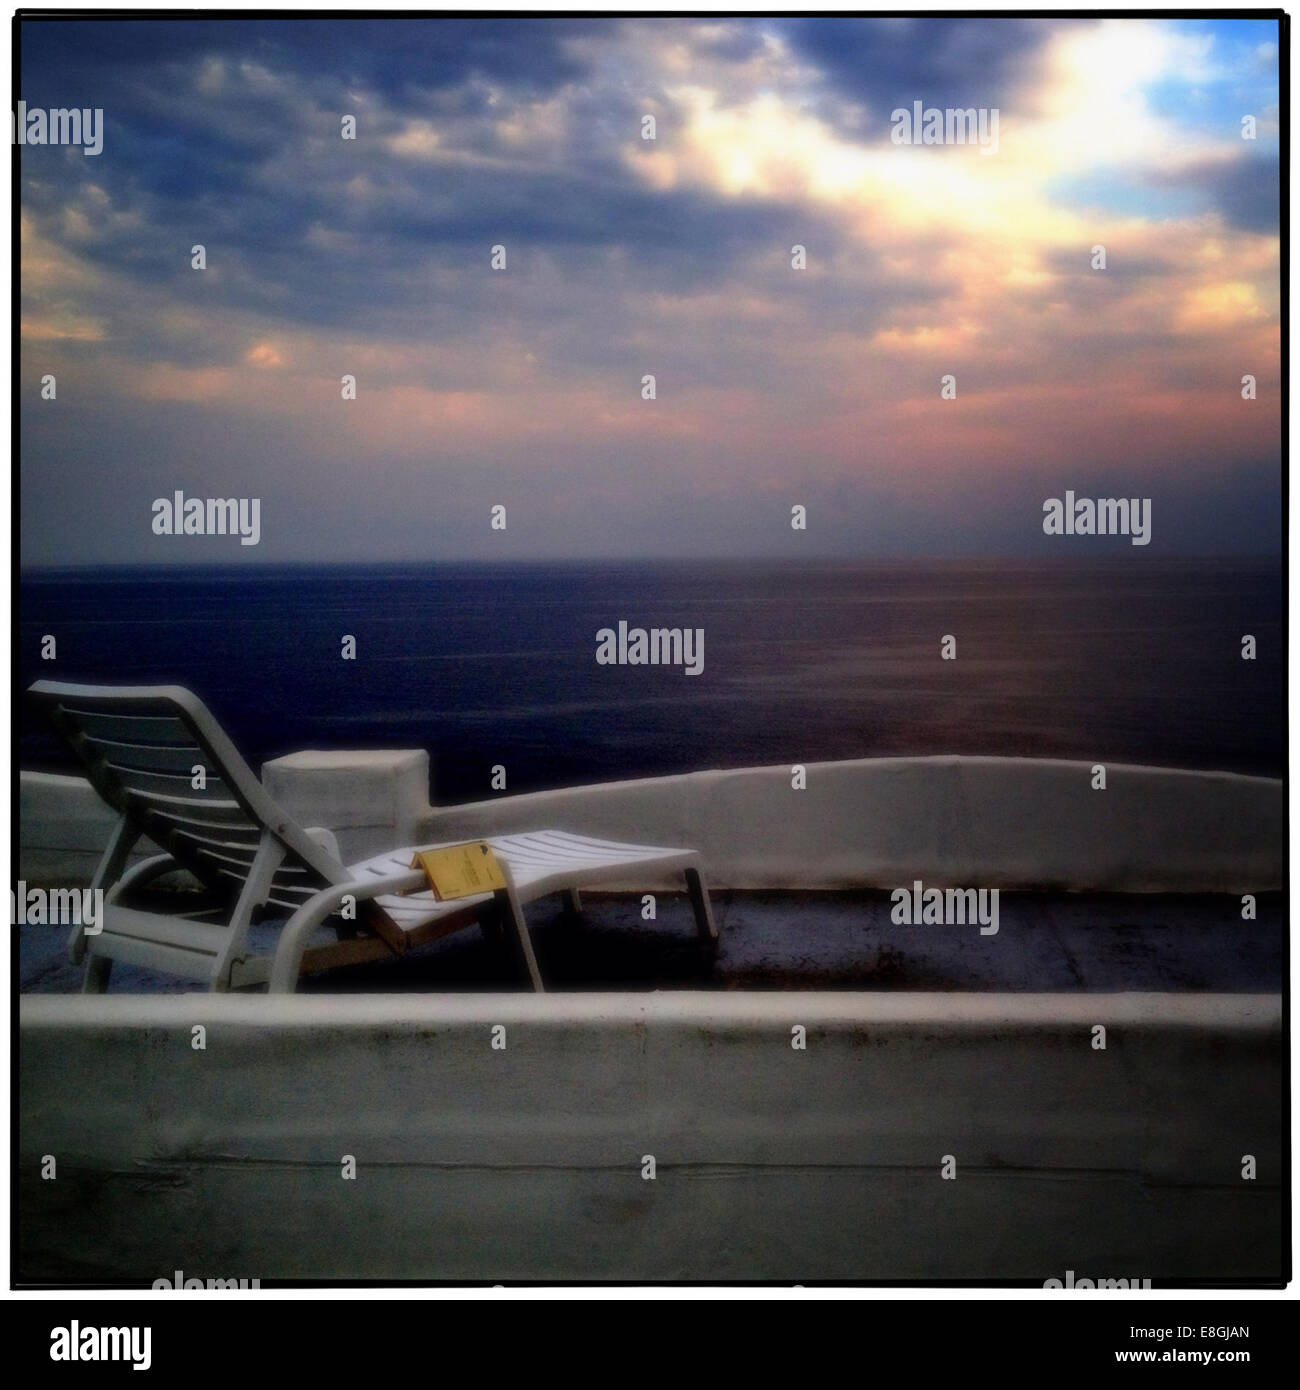 Sunbed at sunset - Stock Image